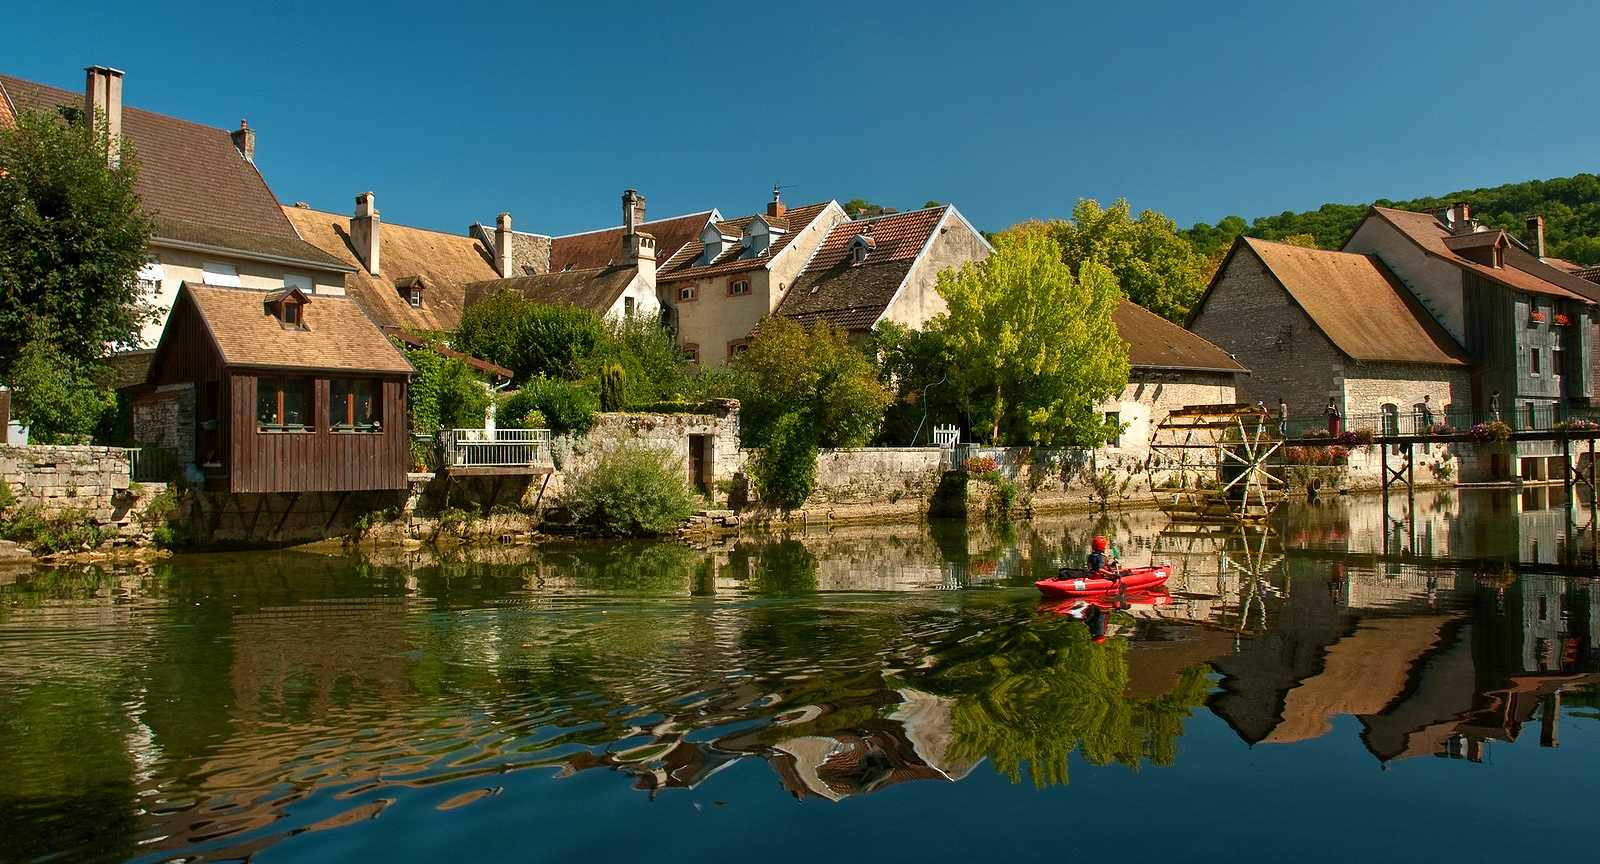 Image : Office de Tourisme* d'Ornans